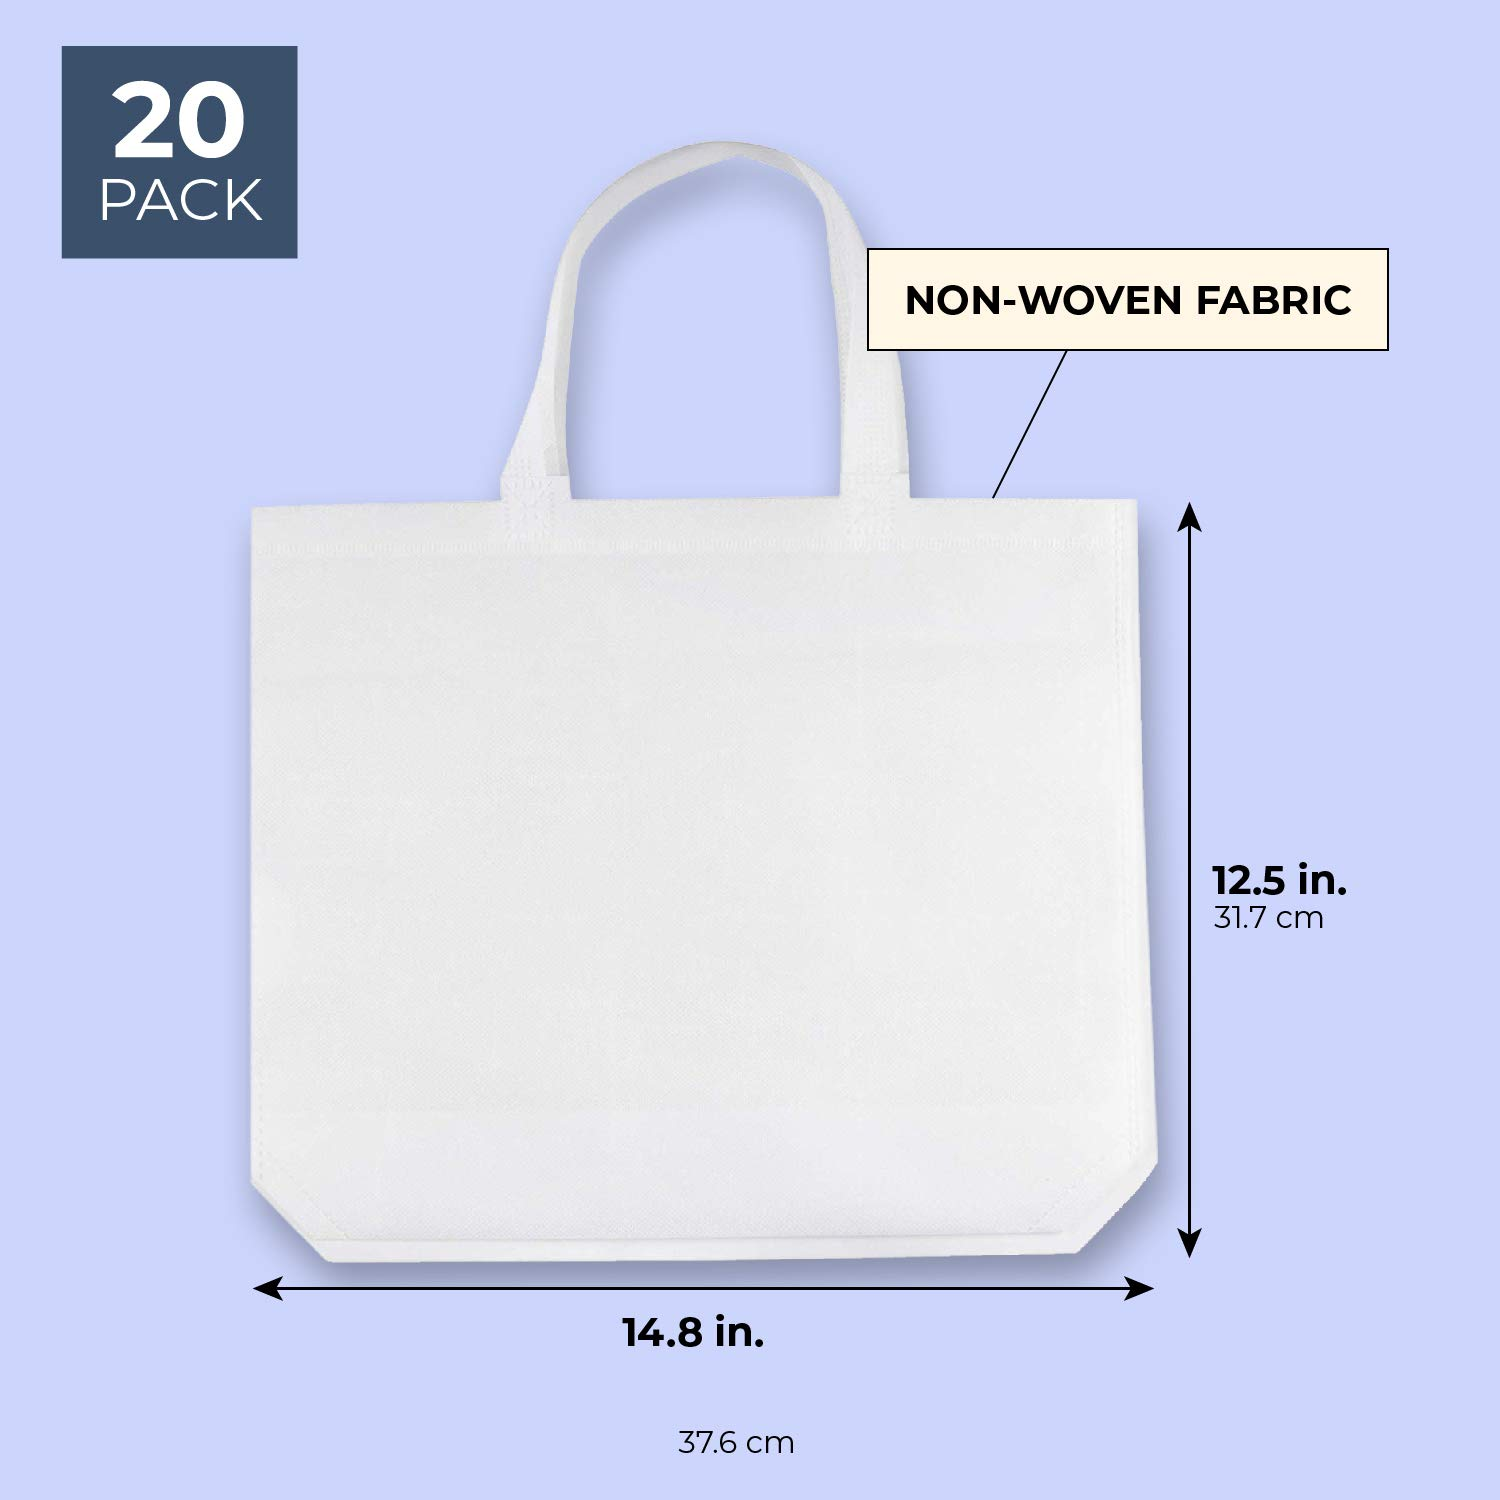 Juvale Bulk Blank White Tote Bags for DIY Crafts, Gifts, Grocery, Party Favors (20 Pack)